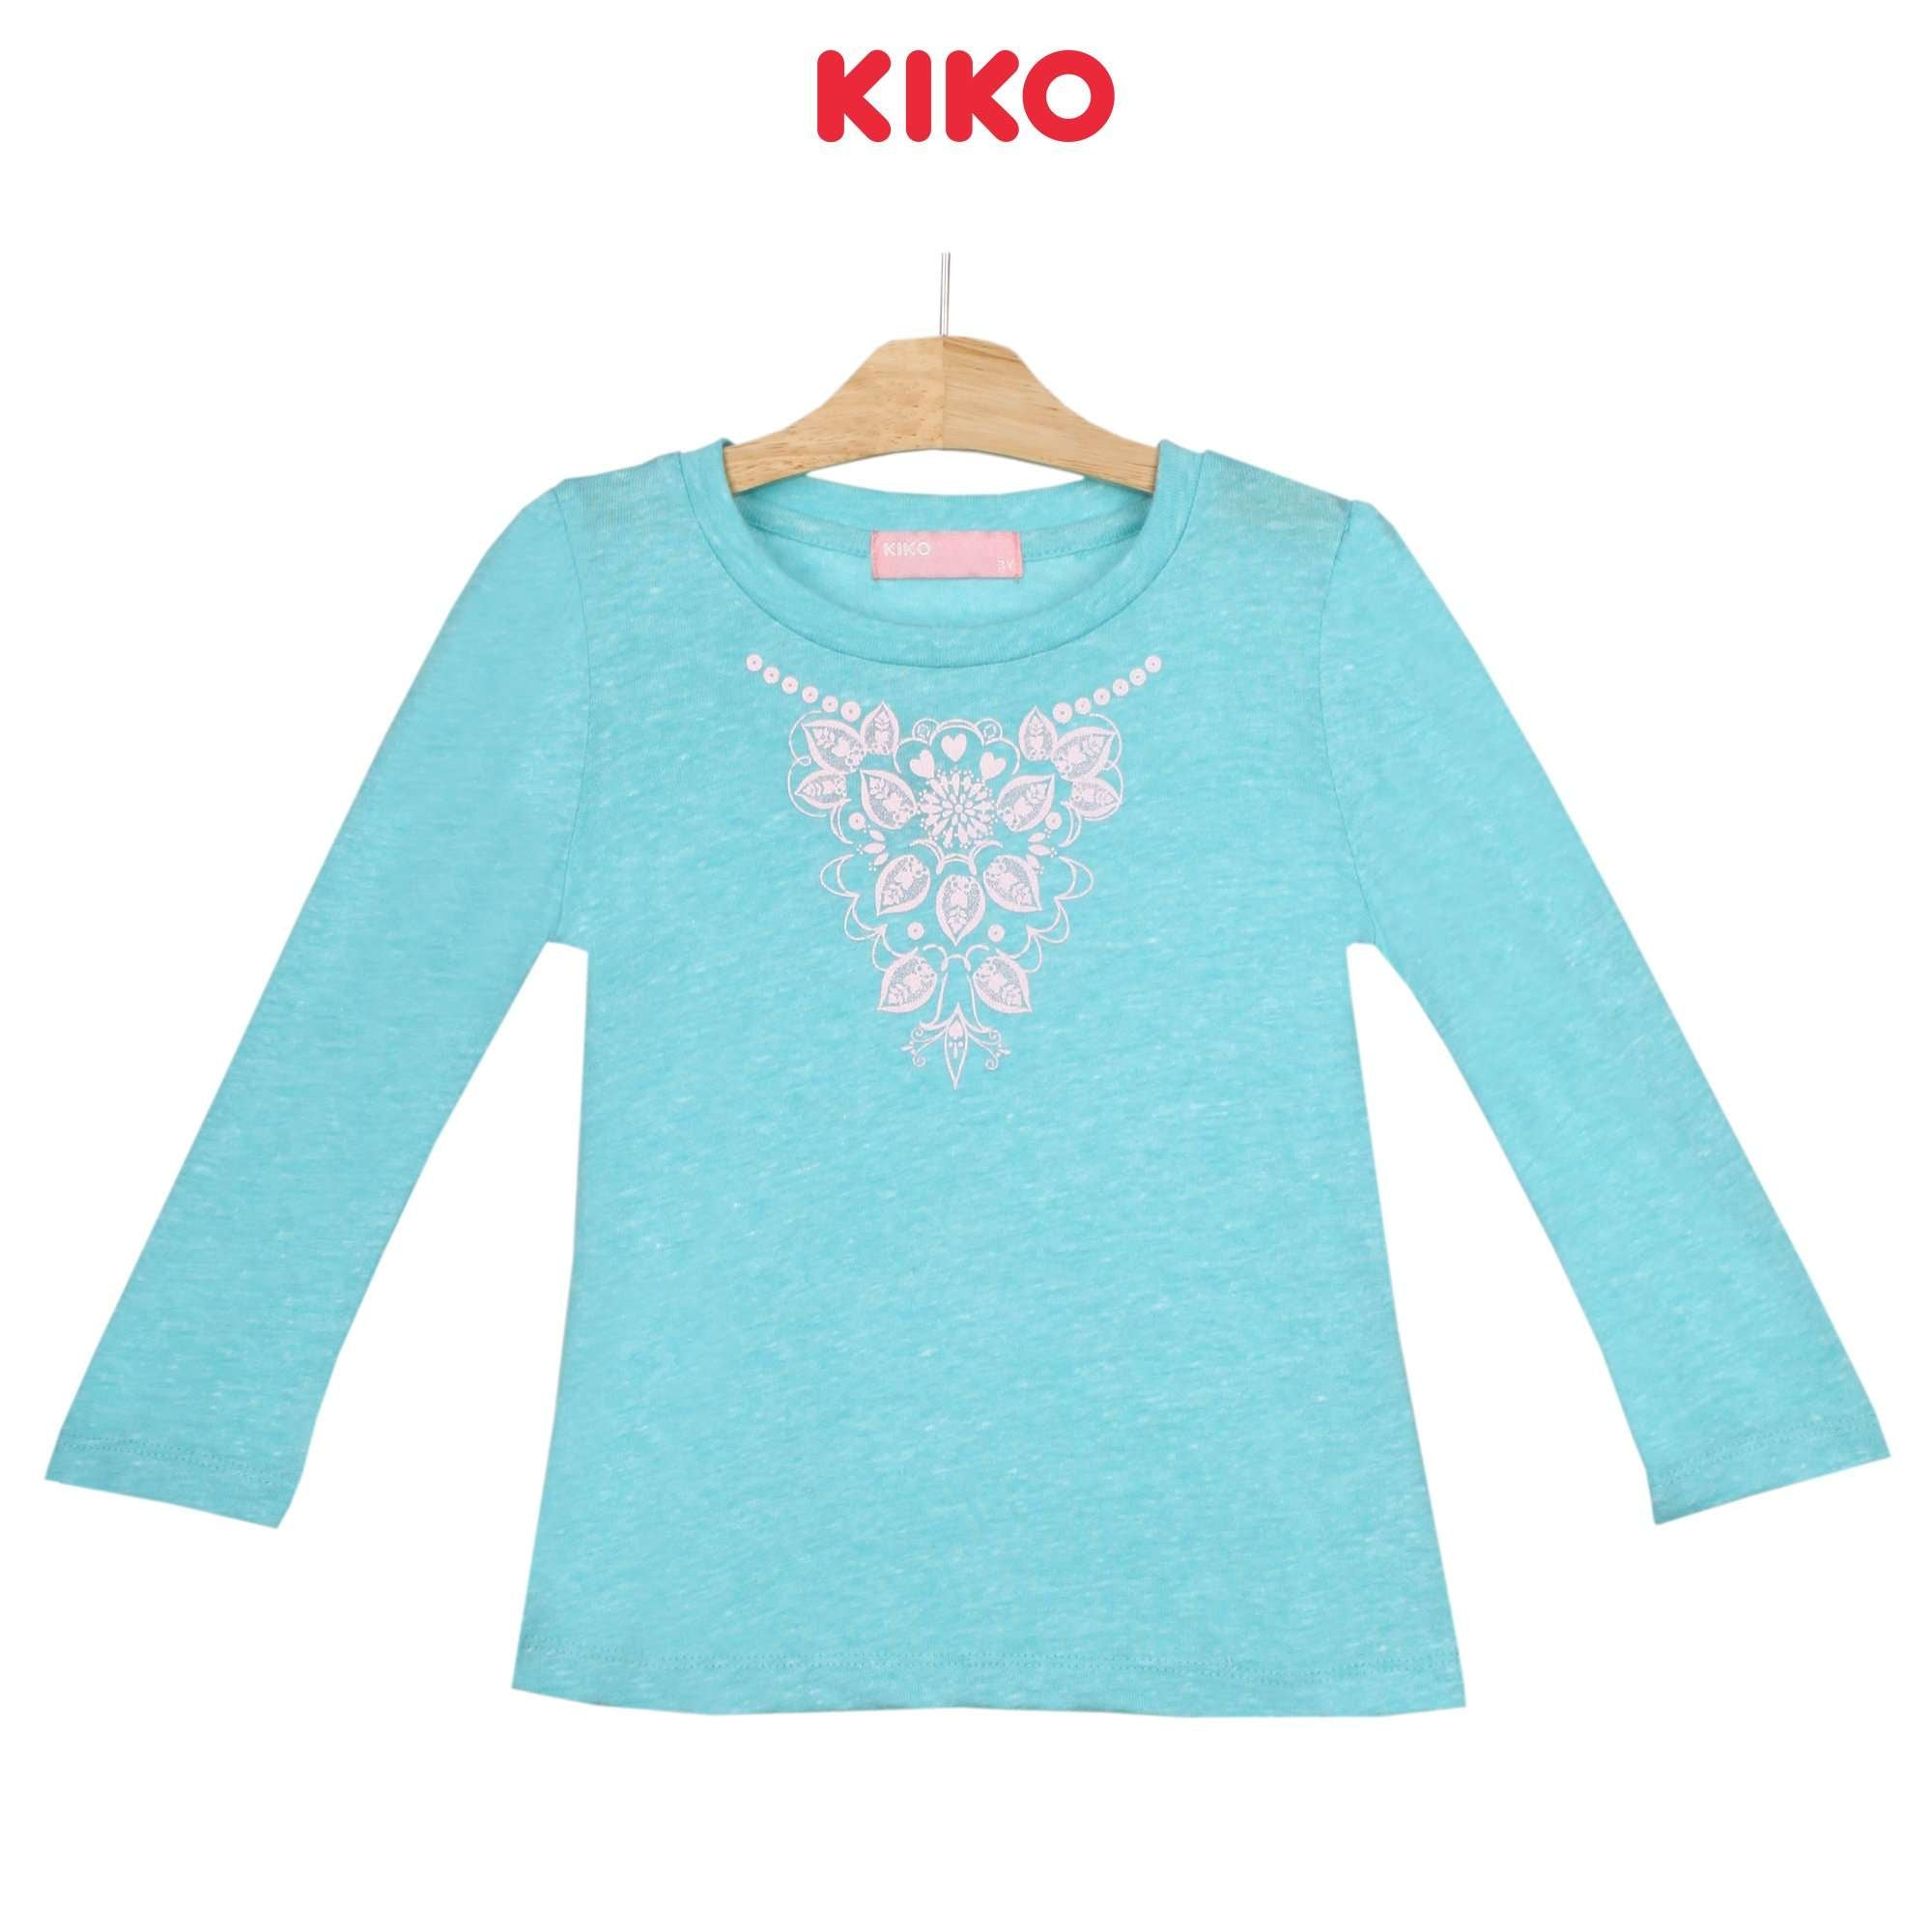 KIKO Girl Short Sleeve Tee - Blue 126069-132 : Buy KIKO online at CMG.MY